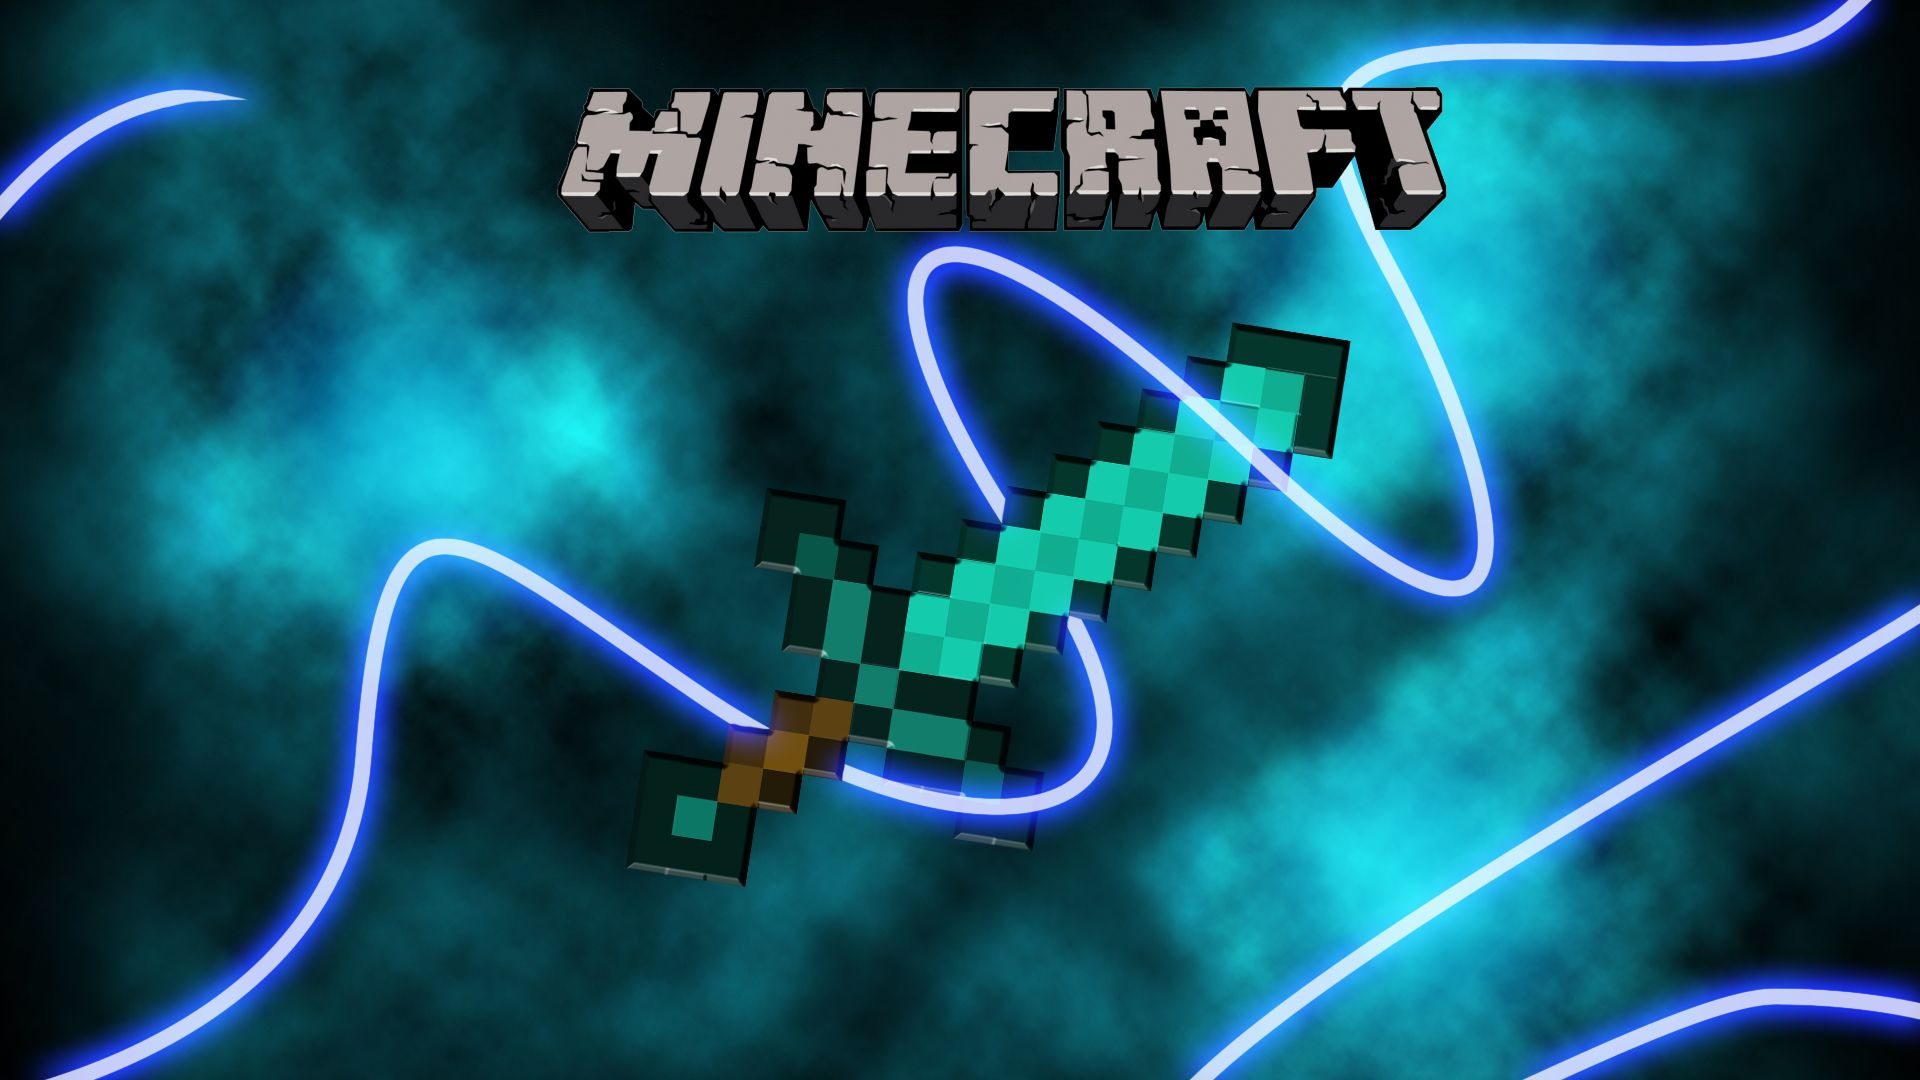 Image From Http Img0 Gm Gtsstatic Com Wallpapers D2a8eb70fe5011d1152eb45ade67b492 Large Pn Minecraft Wallpaper Background Images Wallpapers Background Images